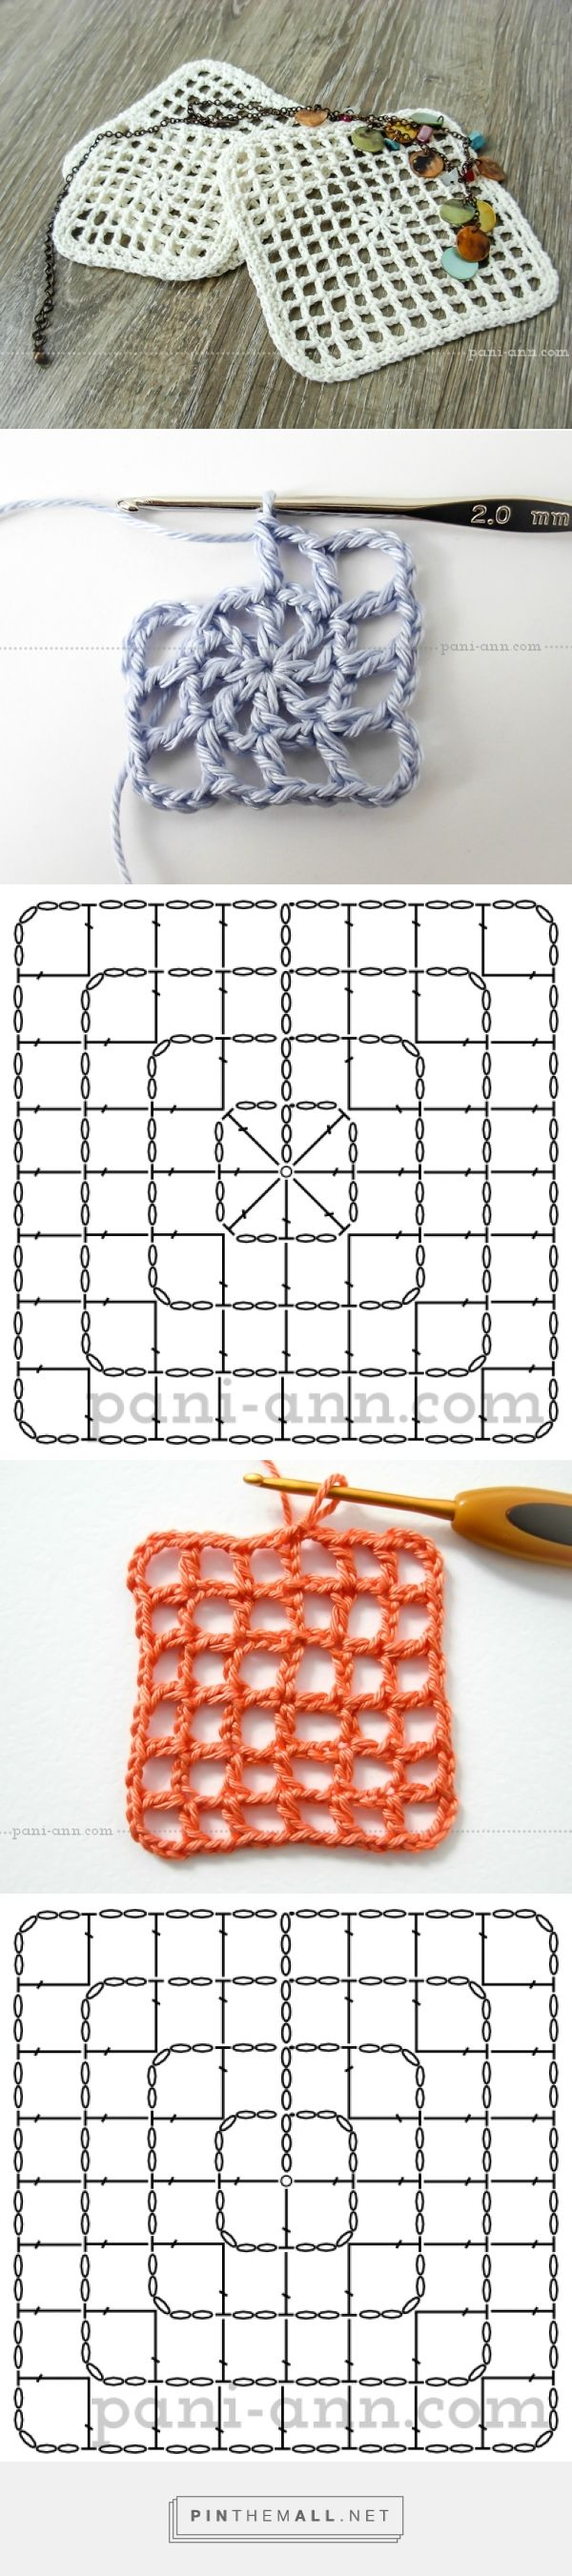 filet crochet in the round to create square - picture tutorial on site ༺✿ƬⱤღ http://www.pinterest.com/teretegui/✿༻